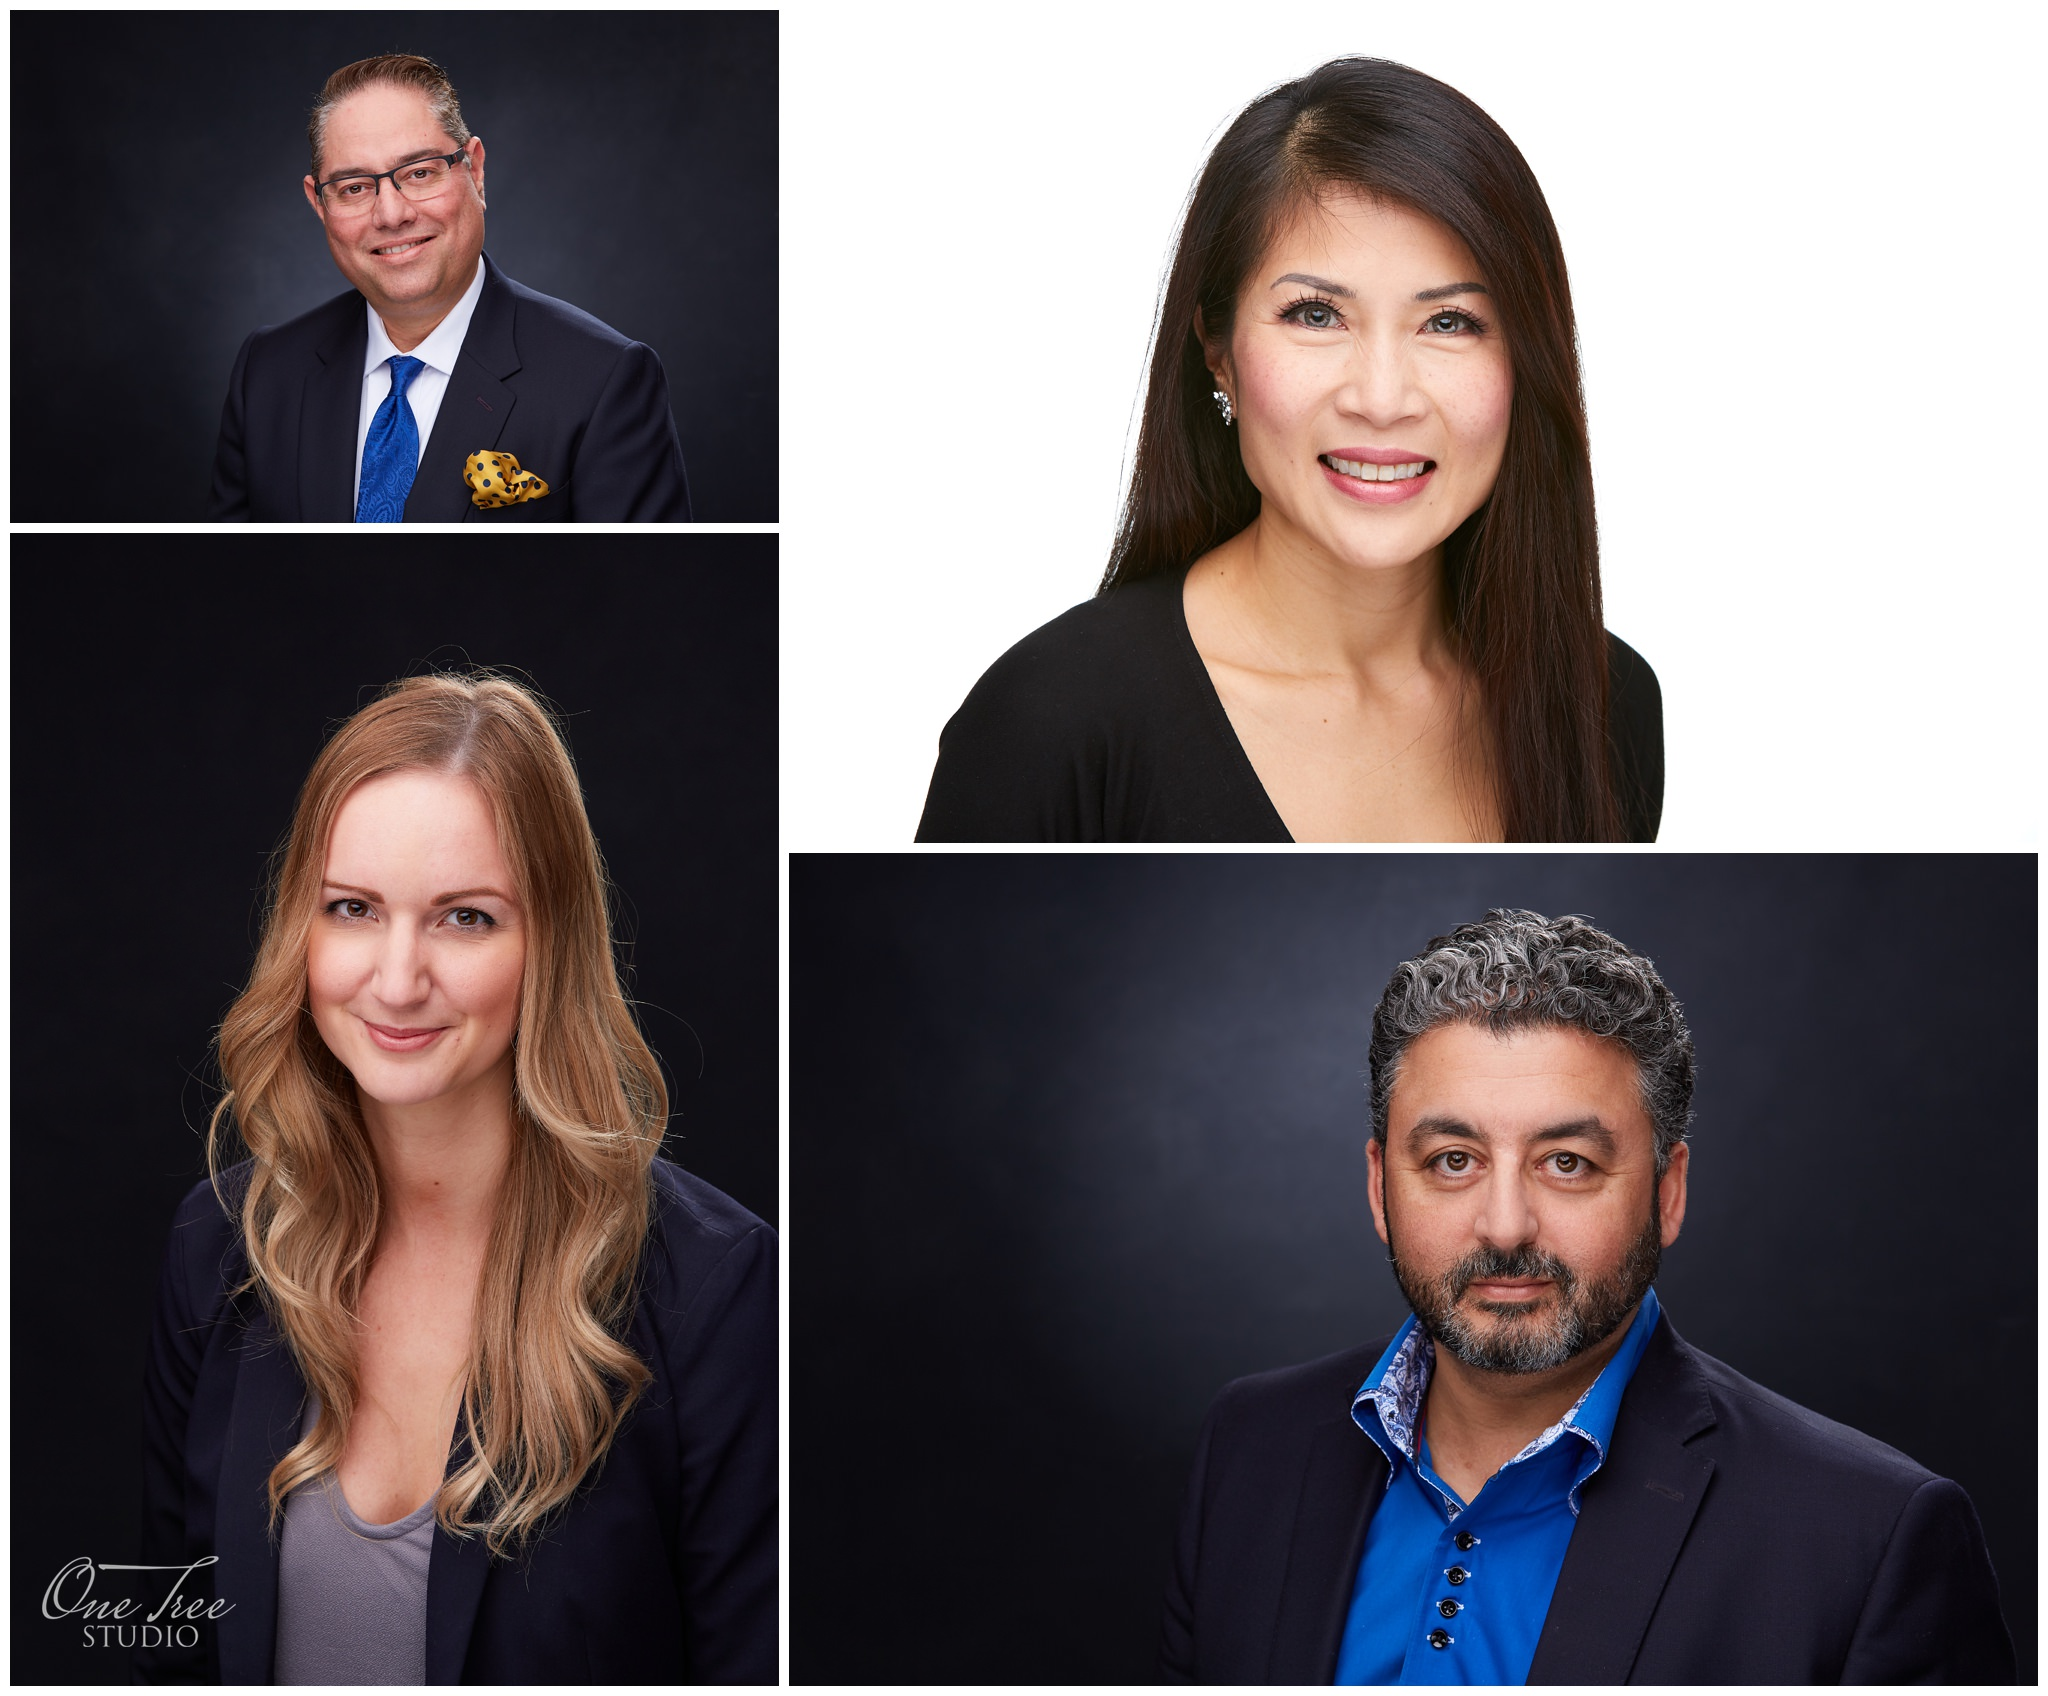 Conference Headshot Photographer Toronto | One Tree Studio Inc.